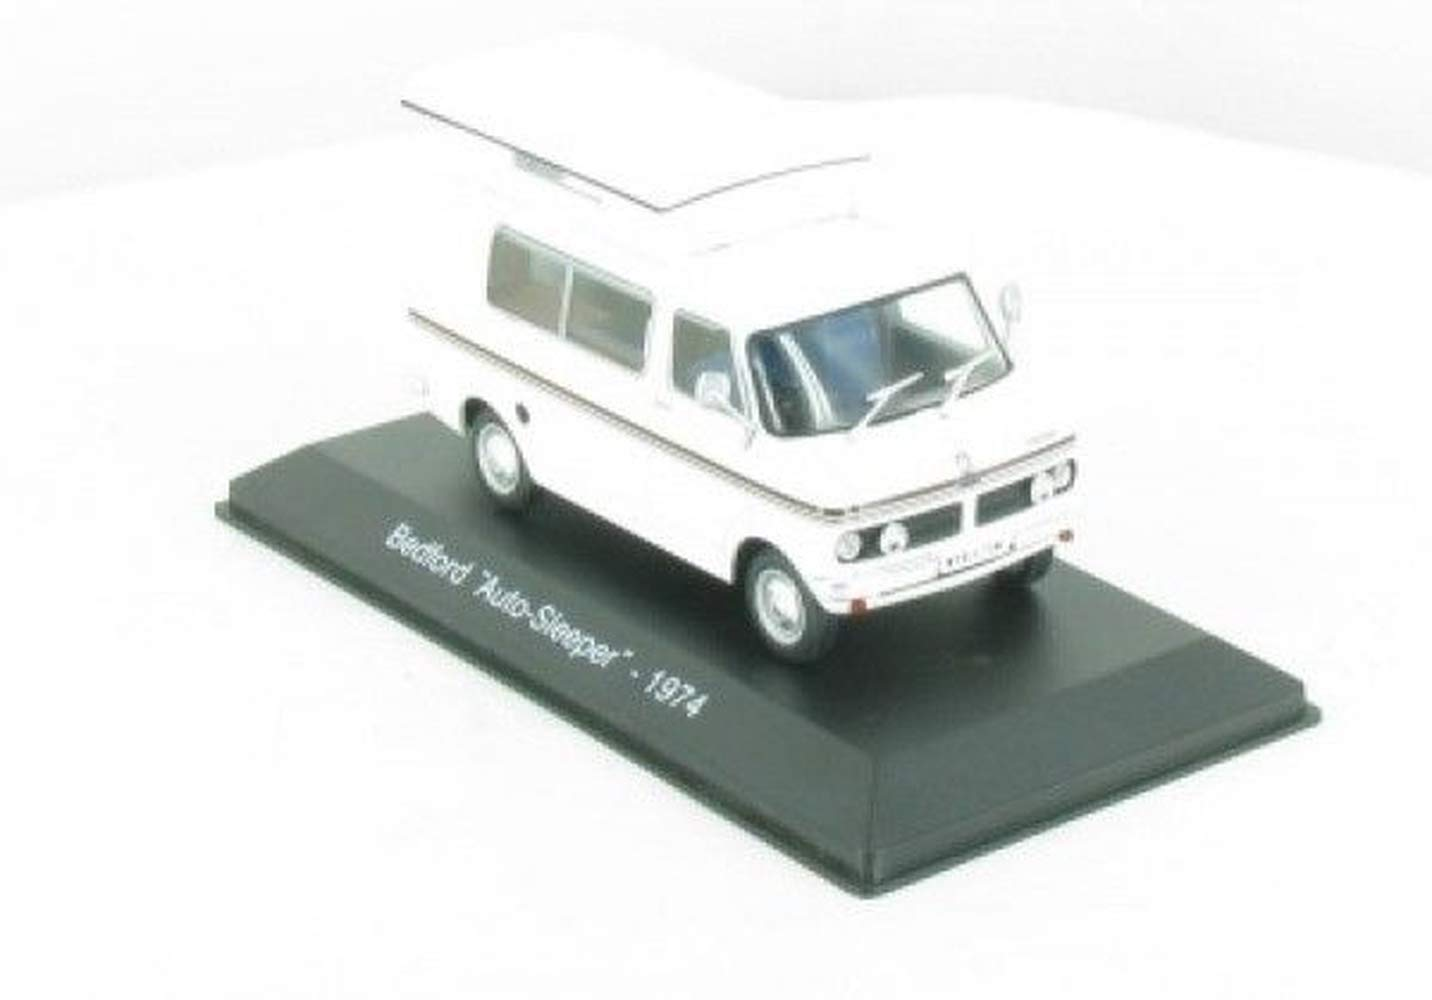 HERCHR Car Sleeper Model Camper, 1/43 Ixo Bedford Collection, White